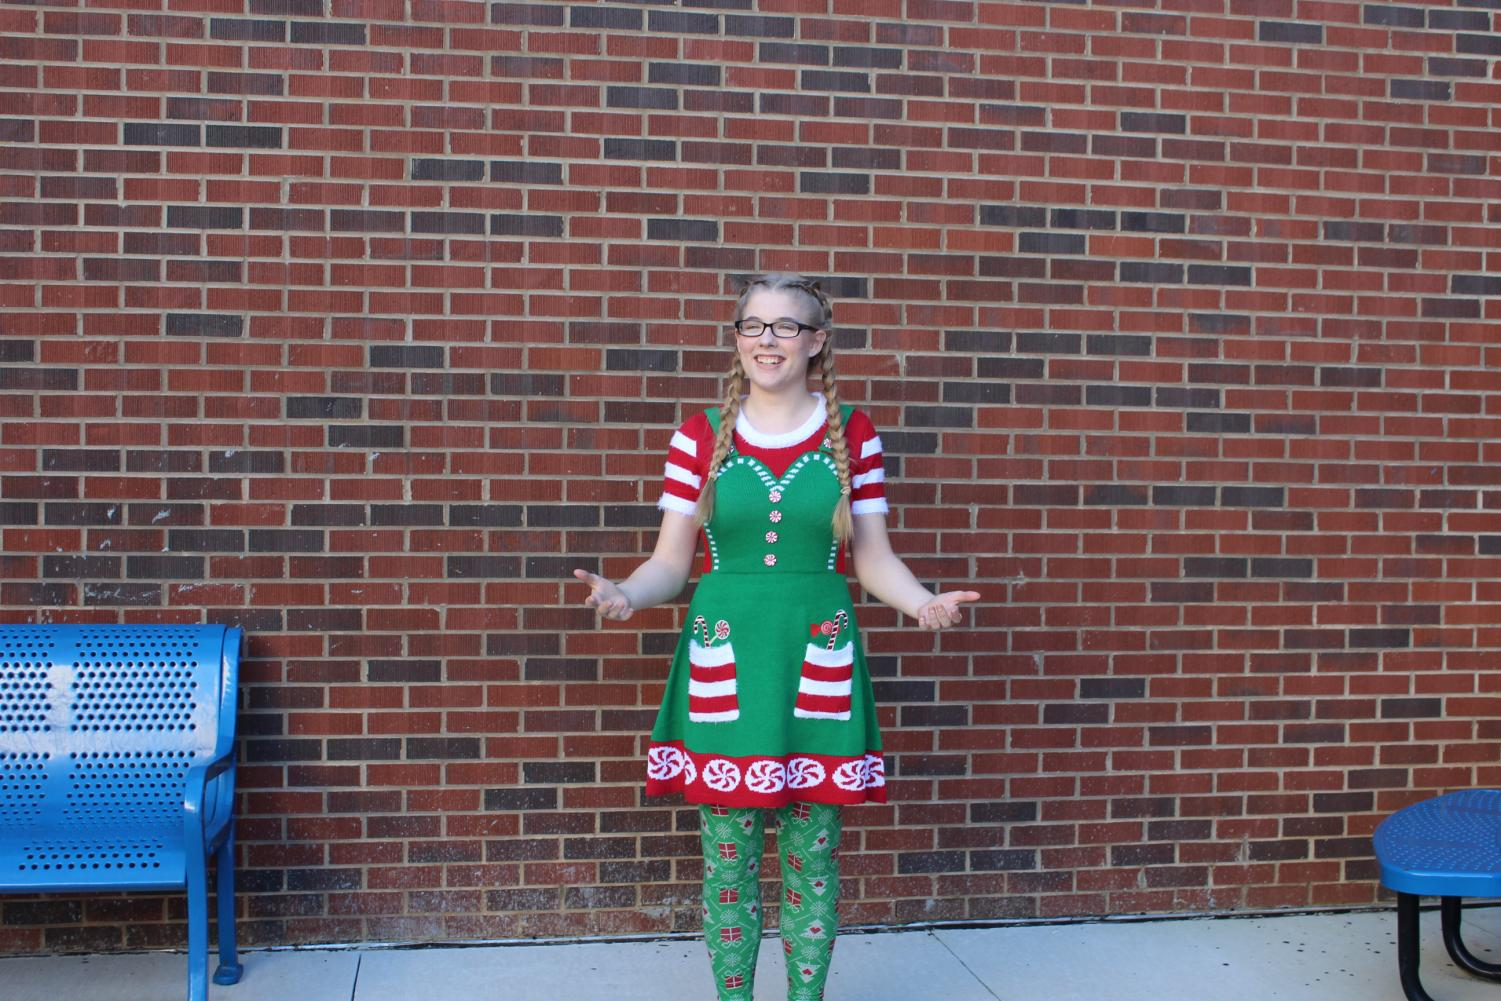 """Today, NC hosted their annual Tacky Sweater Day to spread holiday cheer all over the school. Students that wear silly sweaters receive a free cookie during lunch, as well as the pride of wearing their holiday spirit. """"Seeing everyone in holiday sweaters just make people feel happy!"""" senior Emily LaPierre said."""